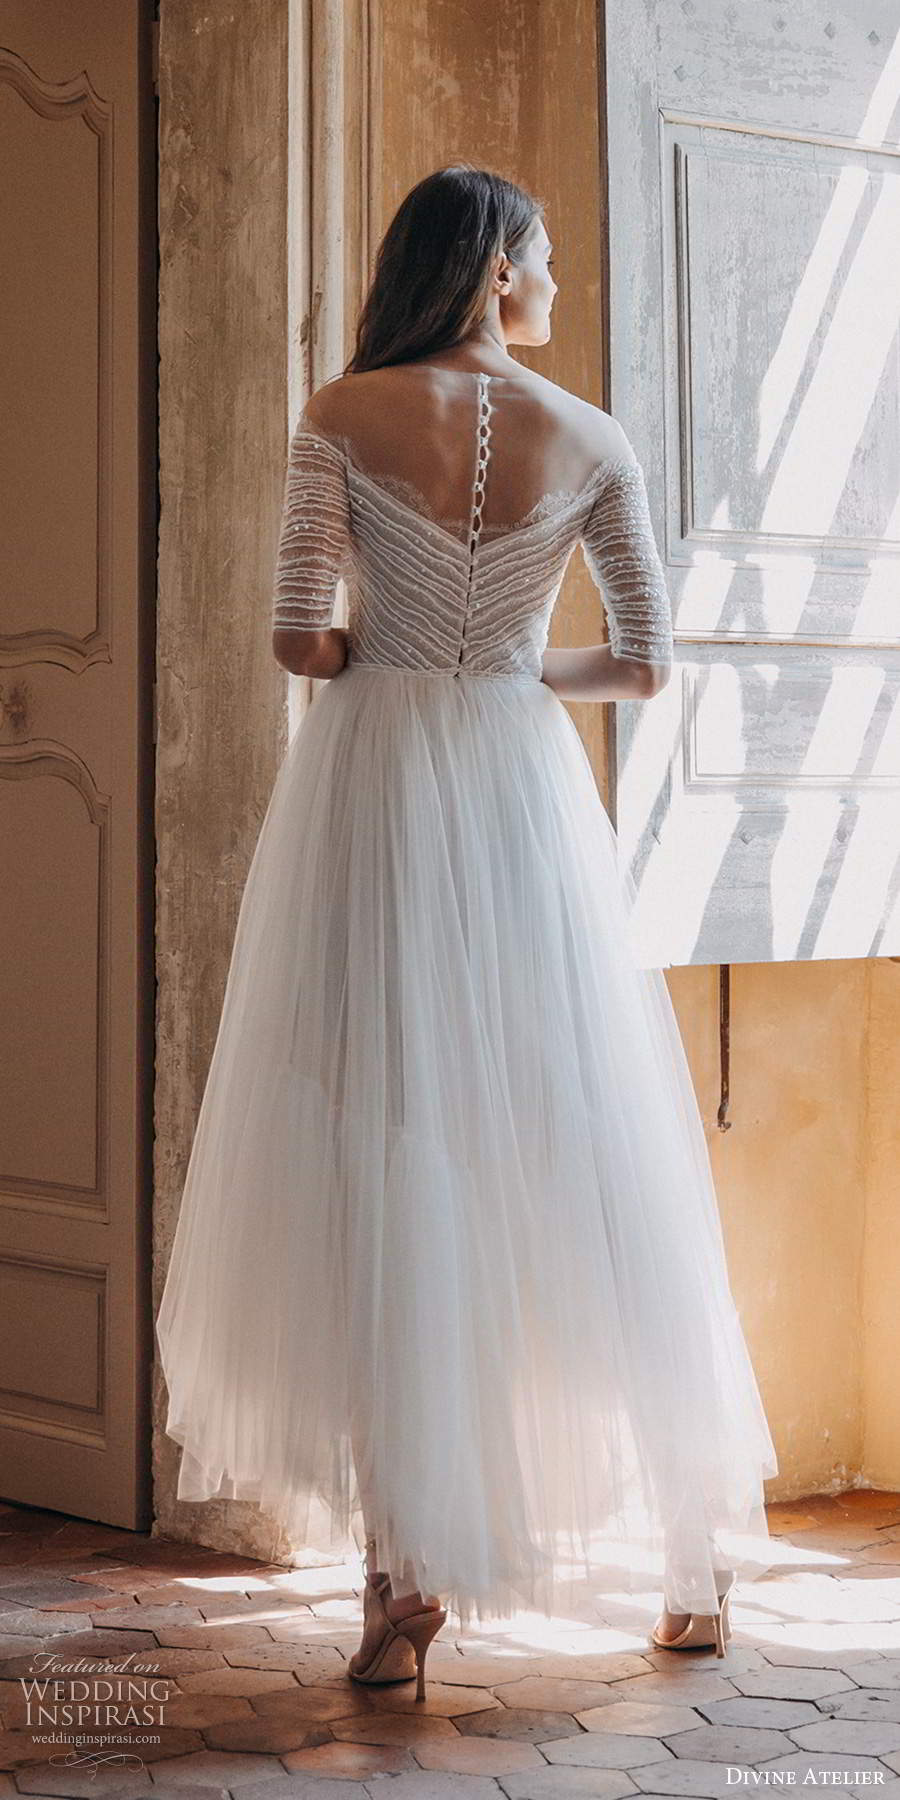 divine atelier 2020 bridal sheer half sleeves off shoulder sweetheart neckline ruched bodice a line tea length high low wedding dress (15) bv